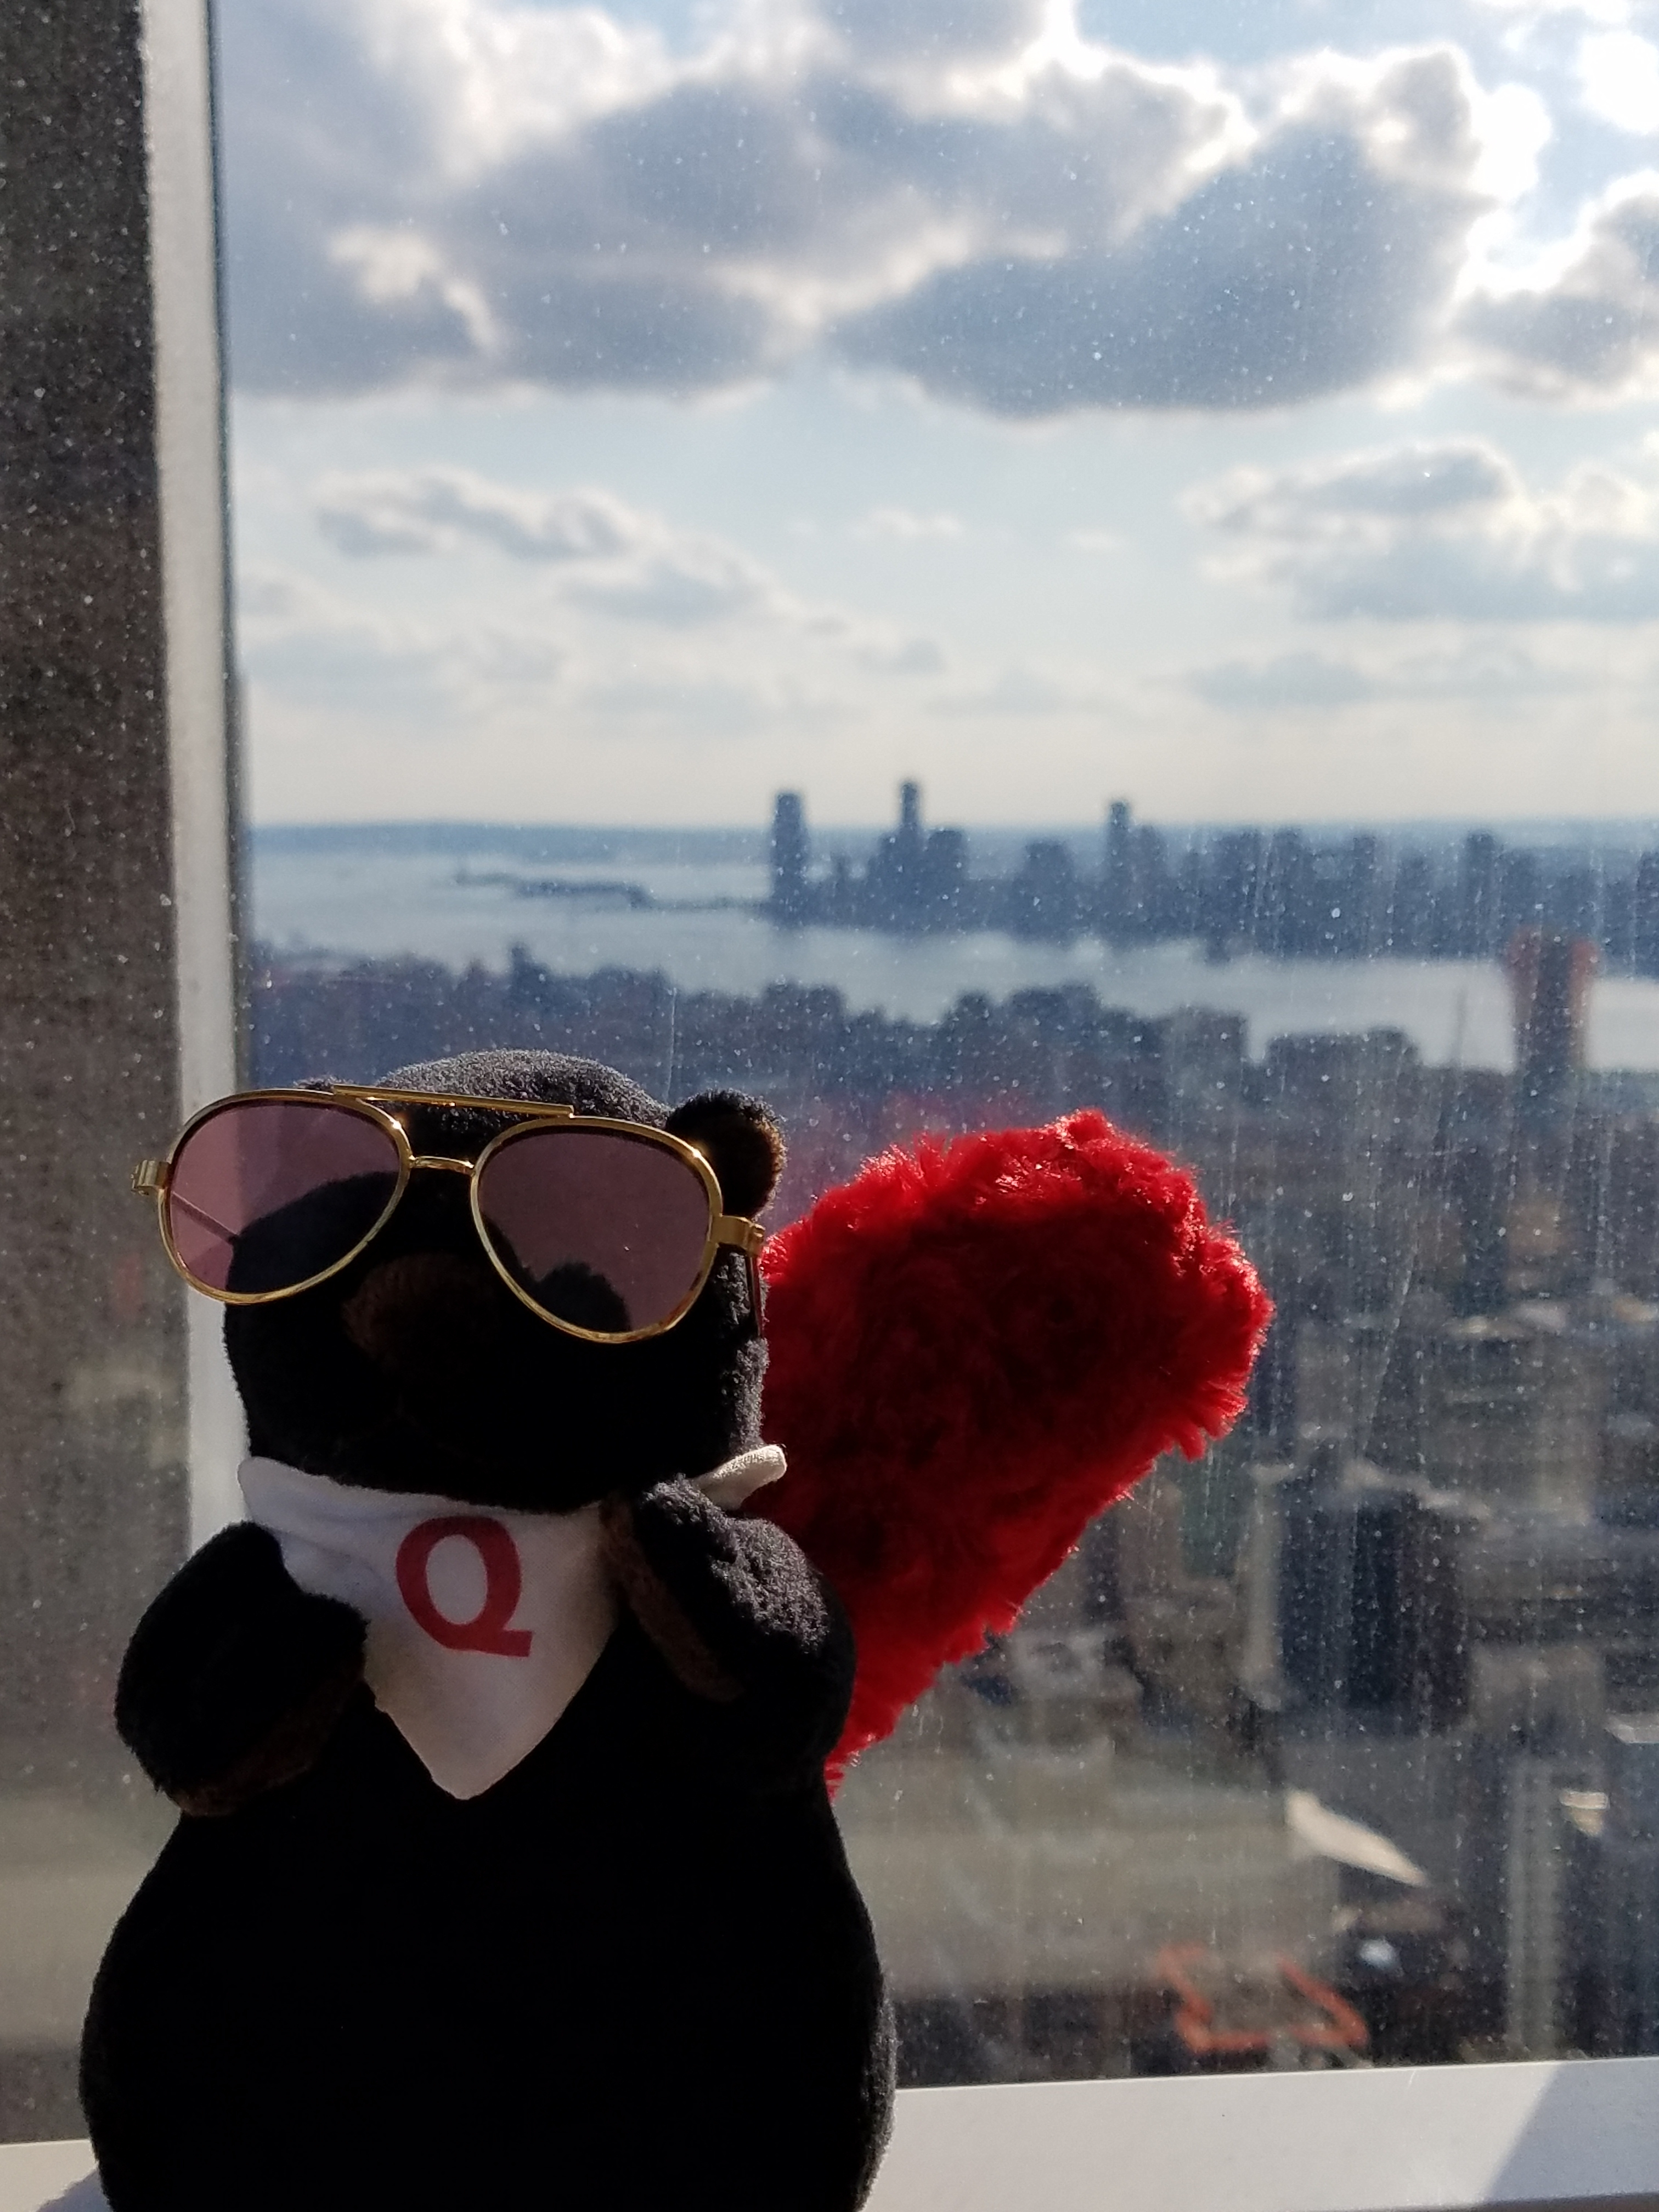 Q takes in the Manhatten Skyline